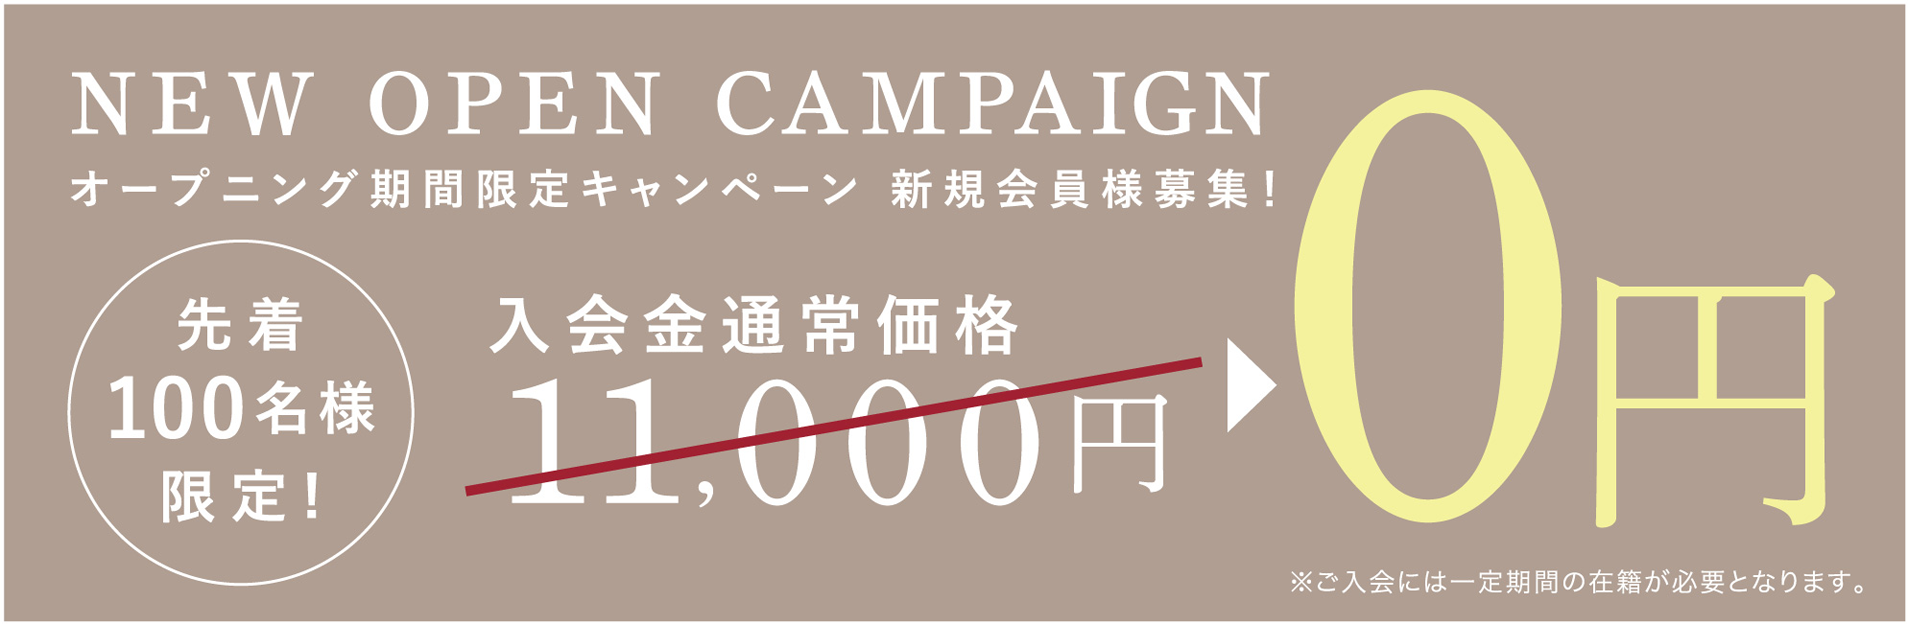 NEW OPEN CAMPAIGN オープニング期間限定キャンペーン 新規会員様募集!先着100名様限定! 初月月会費 11,000円 0円 更に入会金通常価格 11,000円 0円 ※ご入会には一定期間の在籍が必要となります。